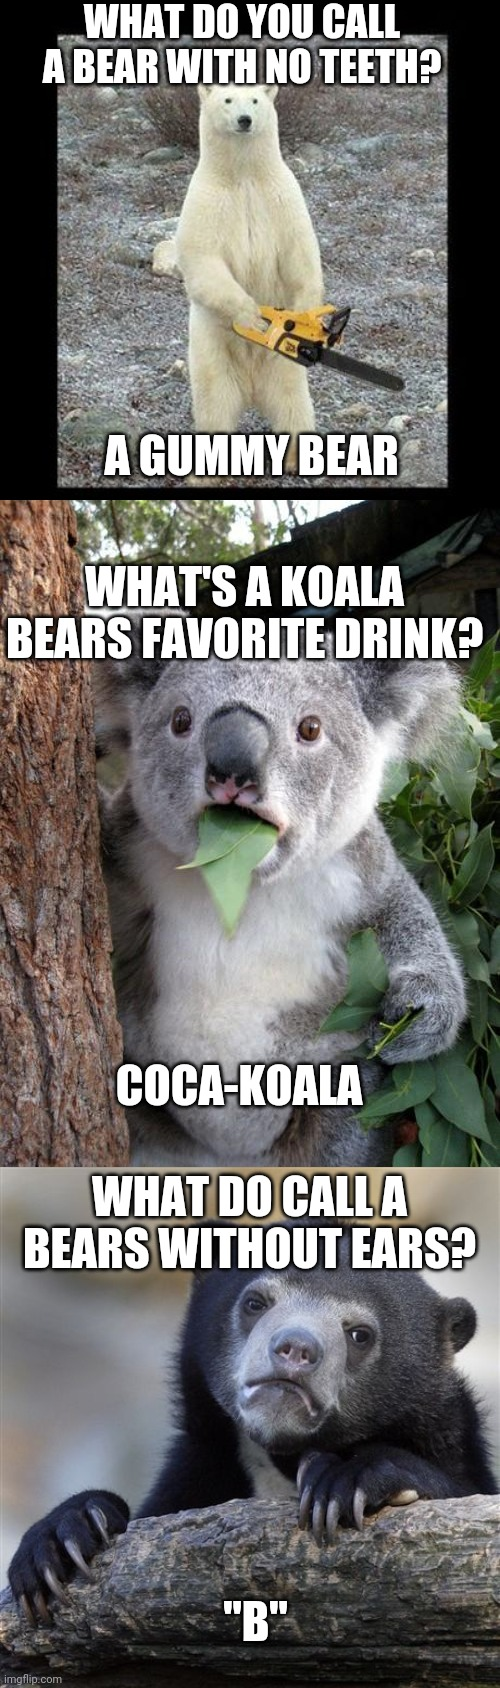 "WHAT DO YOU CALL A BEAR WITH NO TEETH? A GUMMY BEAR; WHAT'S A KOALA BEARS FAVORITE DRINK? COCA-KOALA; WHAT DO CALL A BEARS WITHOUT EARS? ""B"" 